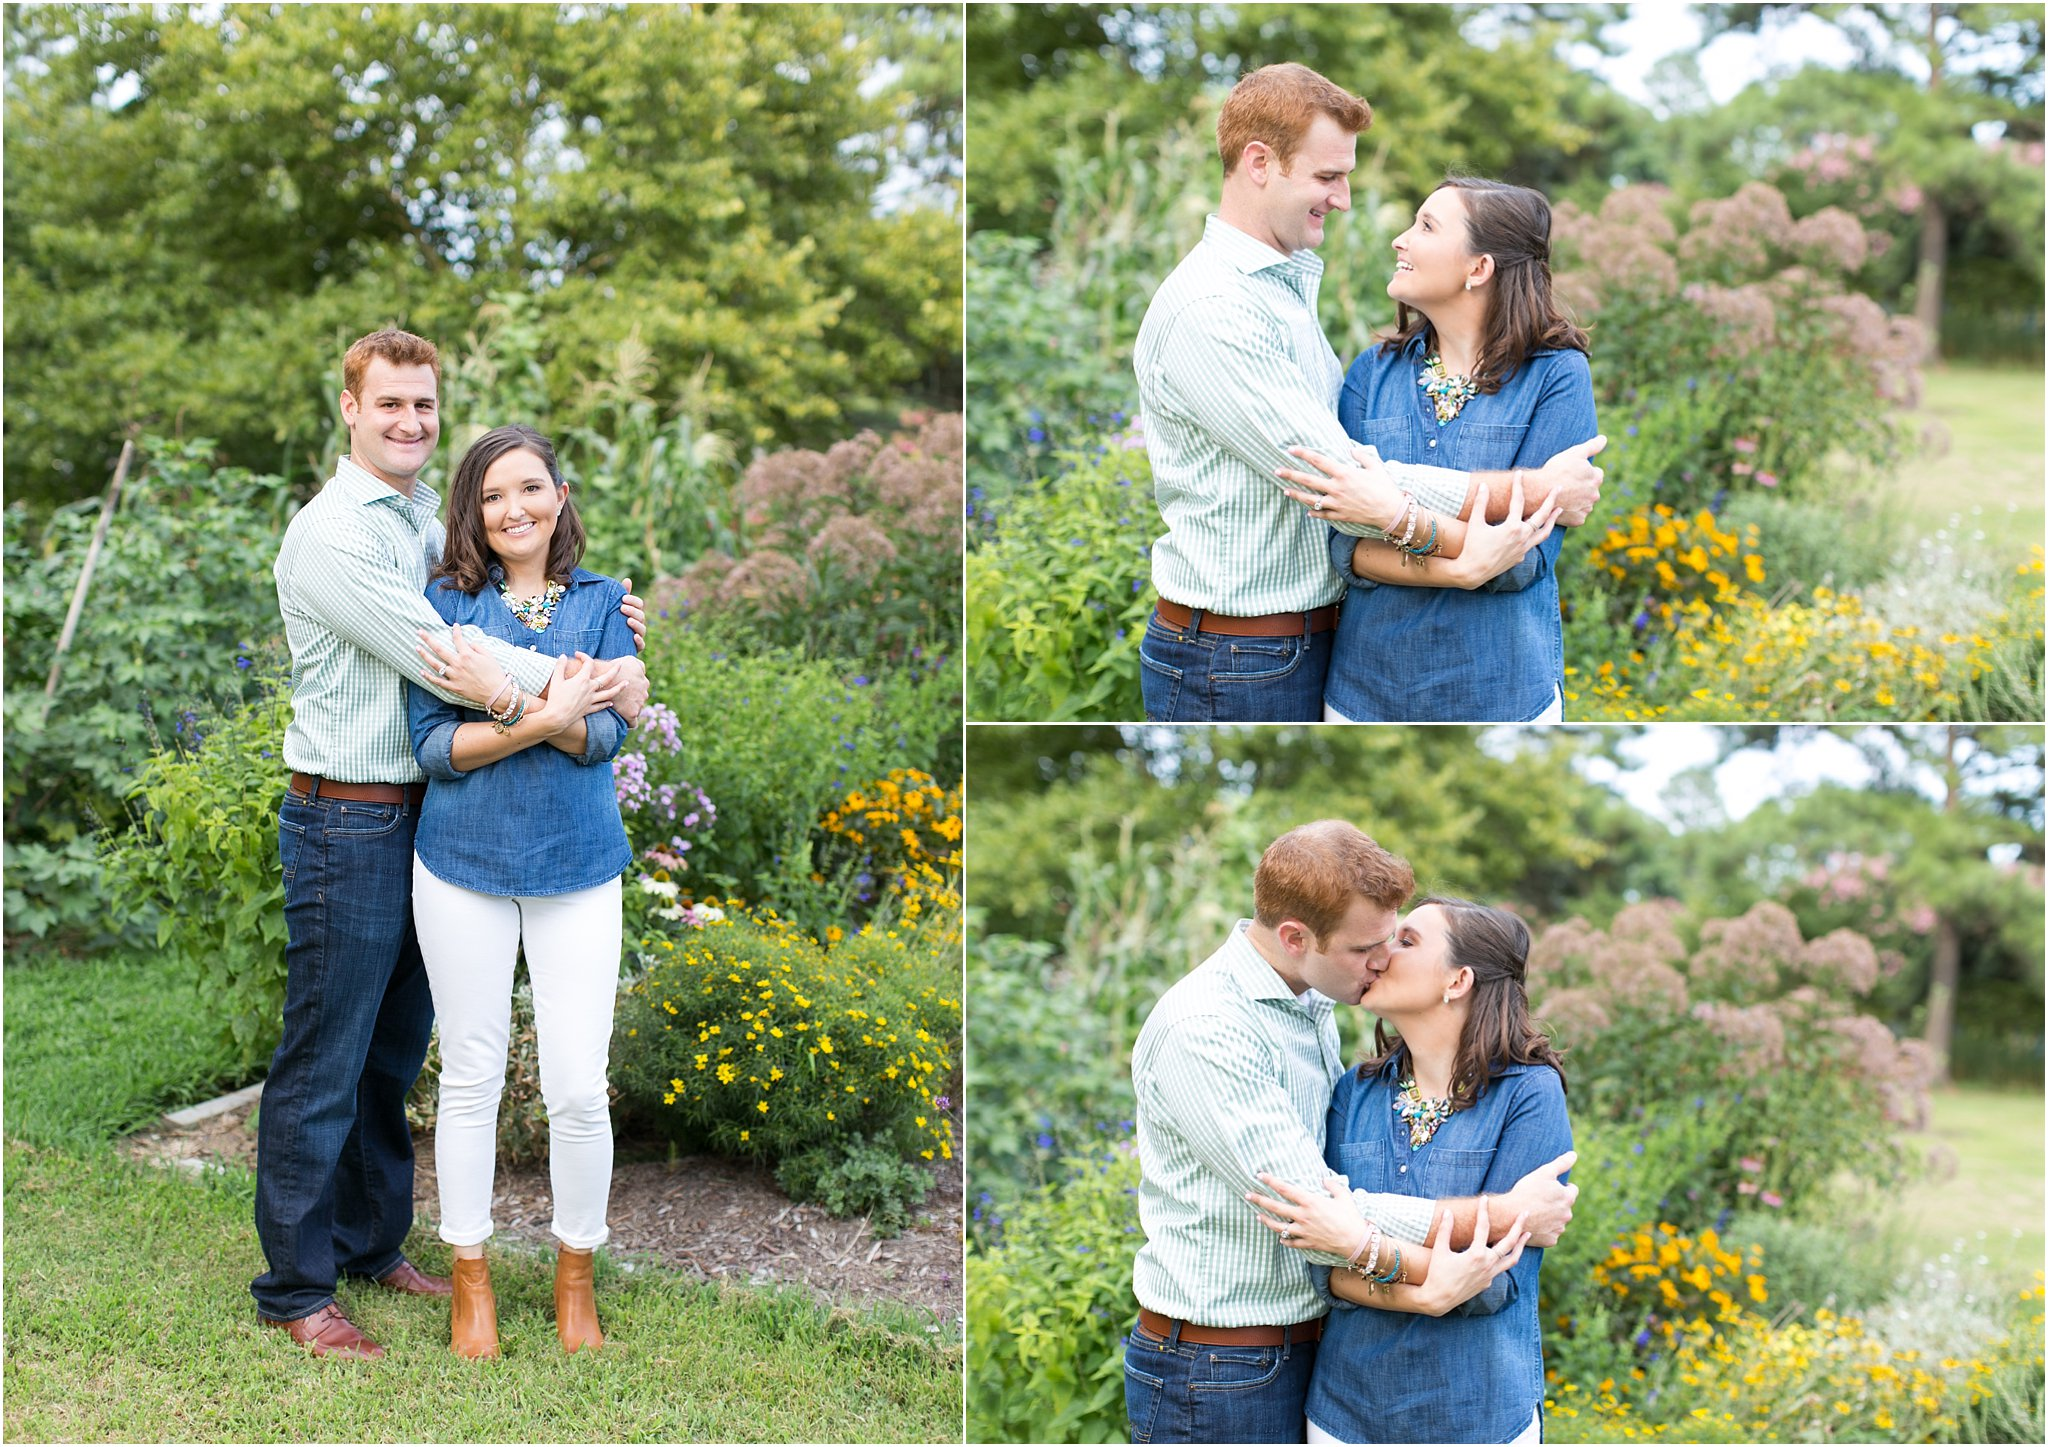 jessica_ryan_photography_virginia_virginia_beach_francis_land_house__portraits_bride_and_groom_beloved_historical_home_engagement_portraits_candid_authentic_engagements_2704